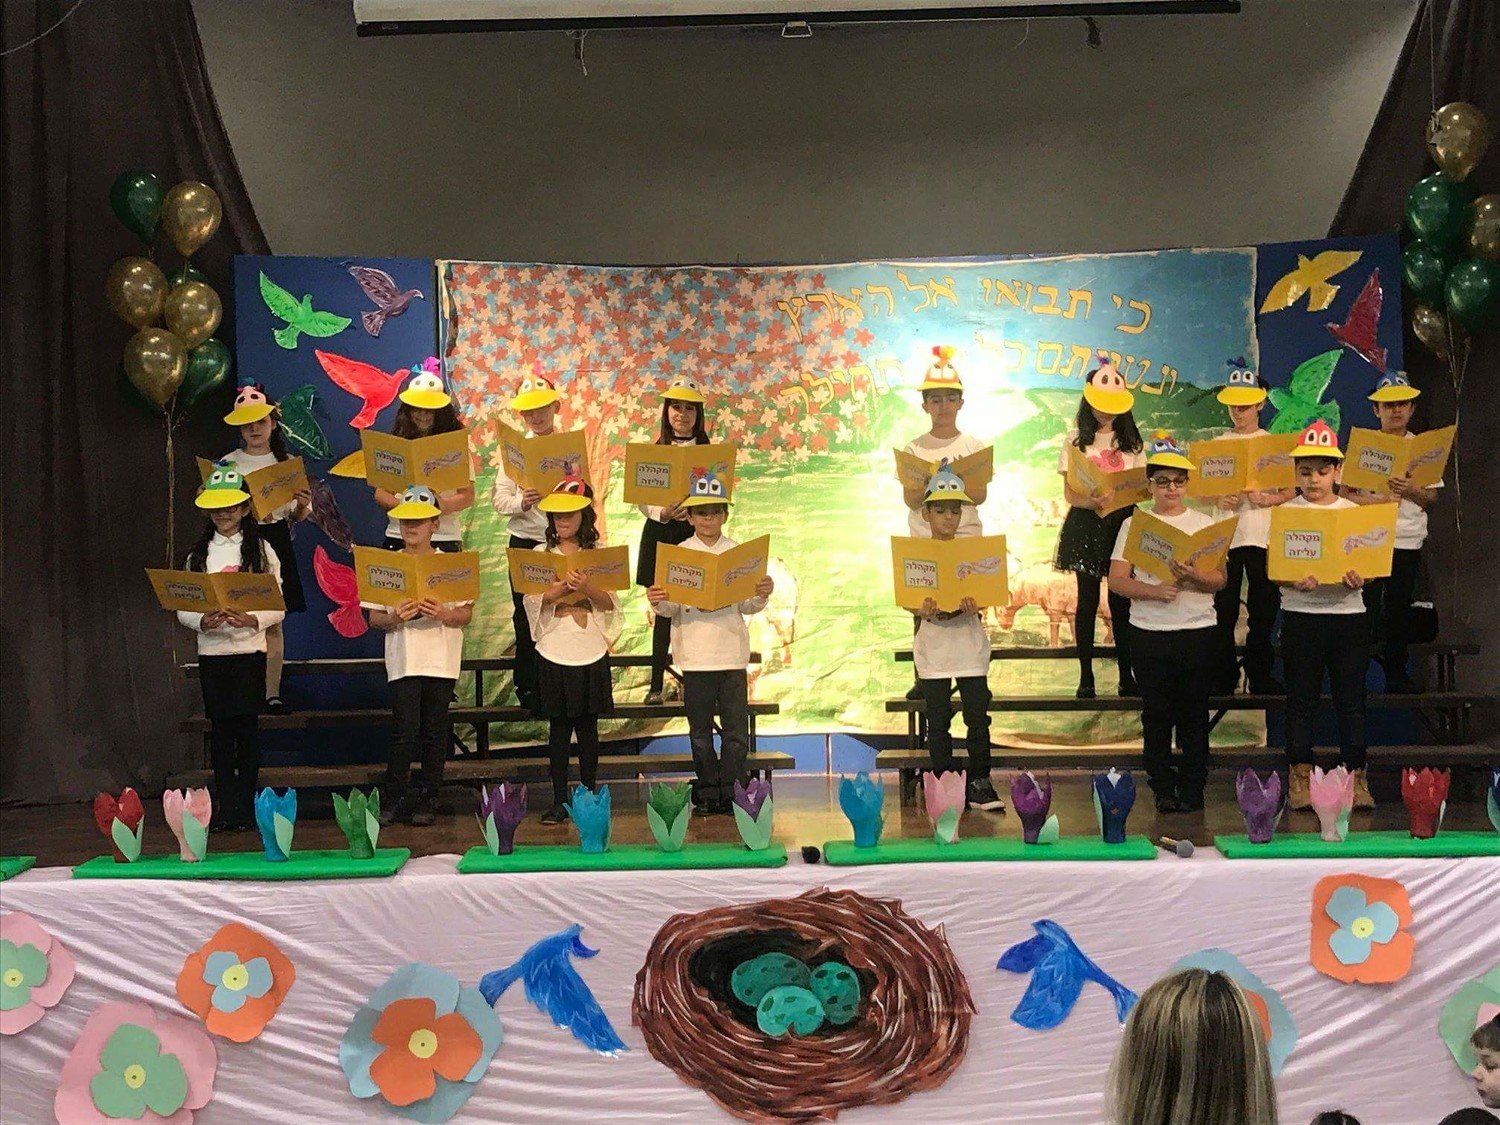 Fourth grade students at The Brandeis School in Lawrence celebrated the Jewish holiday of Tu B'Shvat, which celebrates the planting of trees.